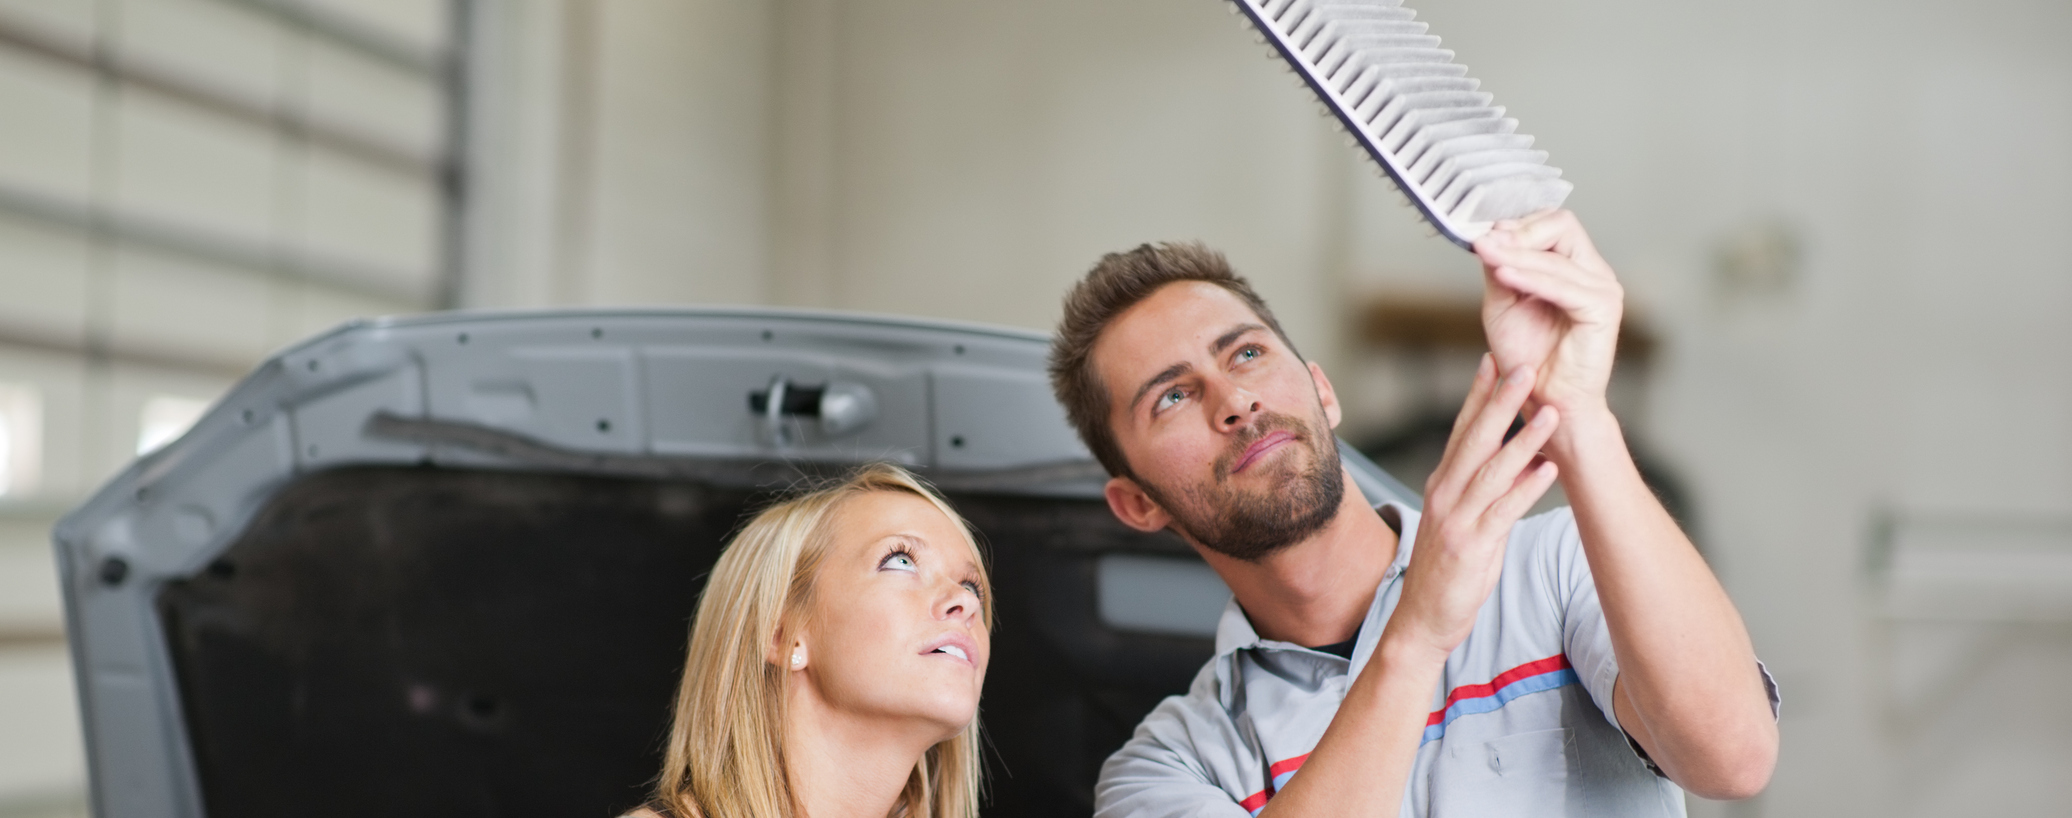 Cabin Air Filter Replacement near Smyrna, DE